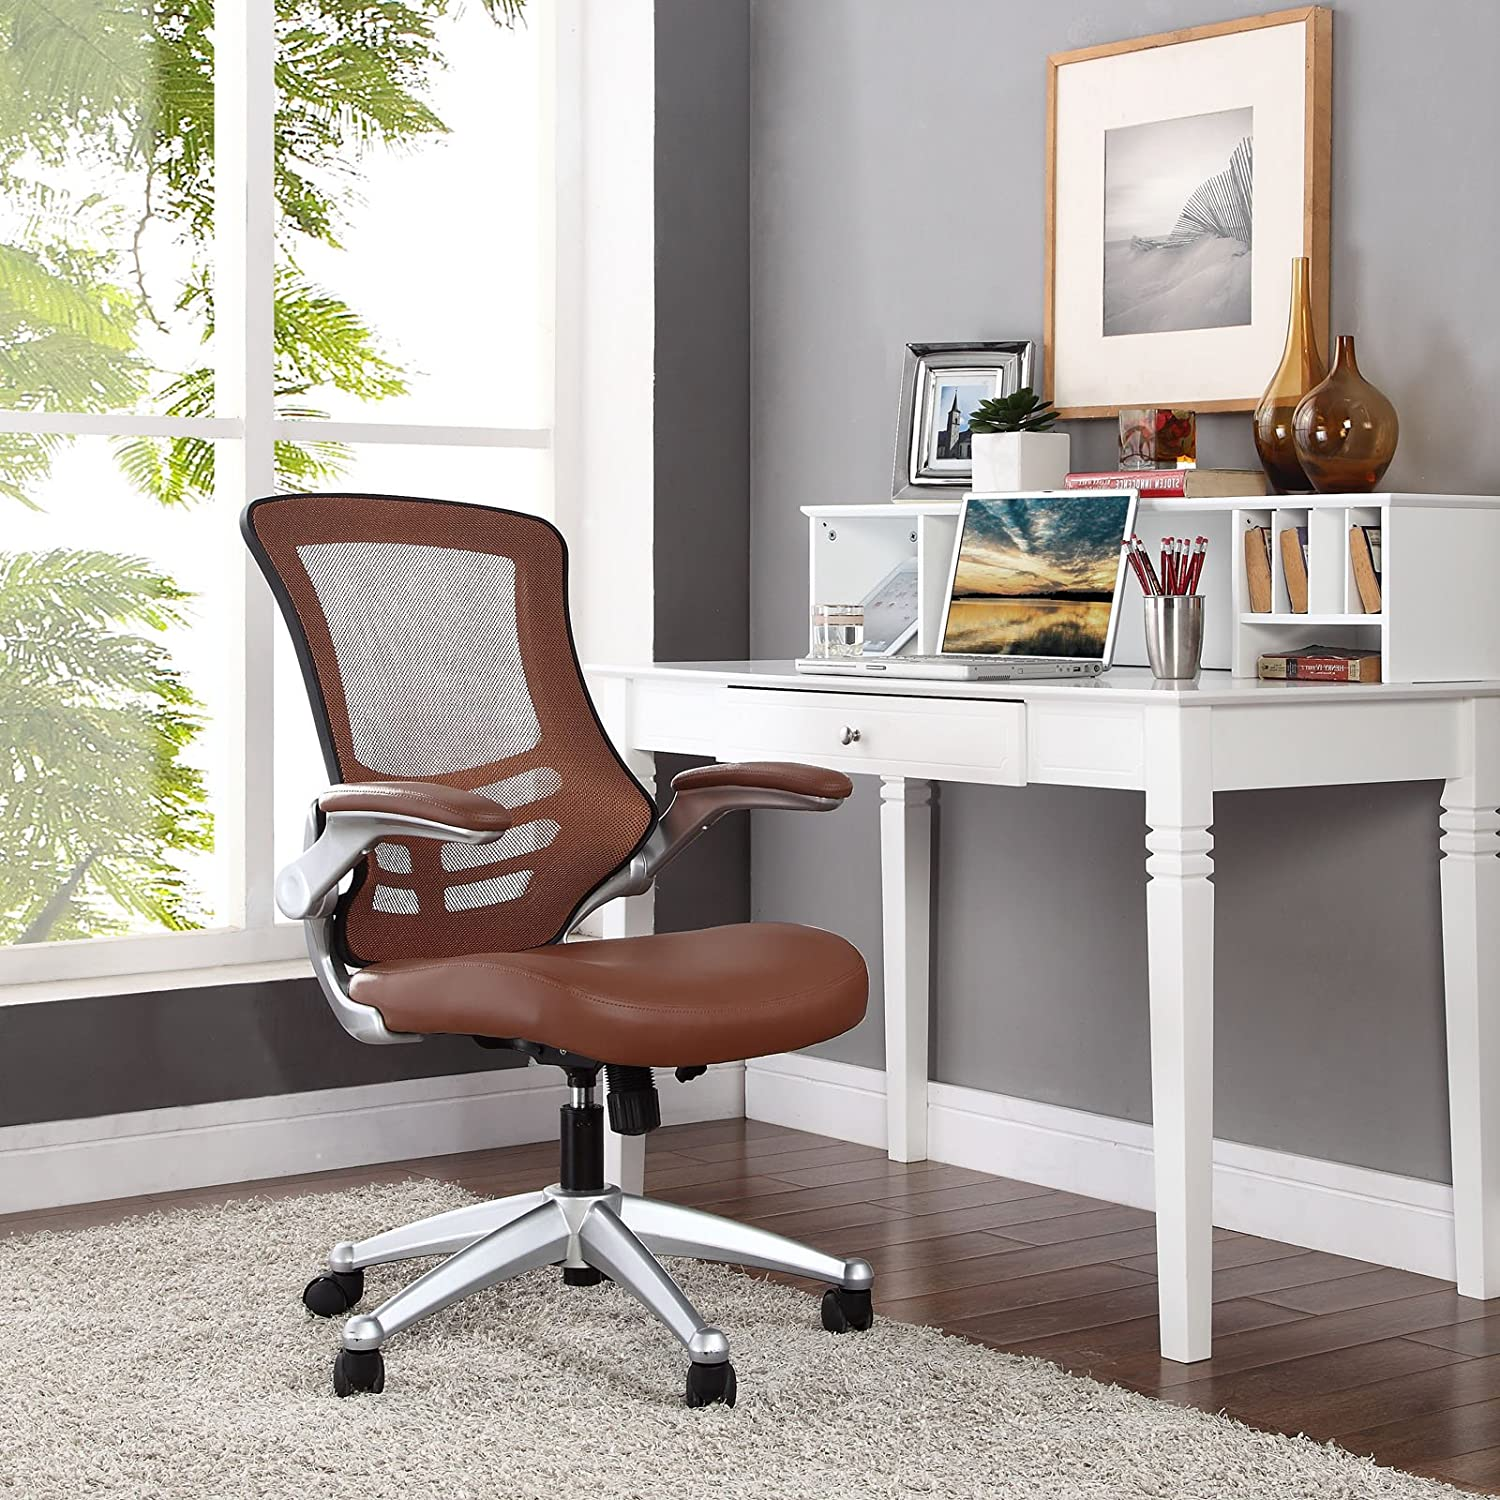 Modway Attainment Mesh Ergonomic Computer Desk Office Chair With Flip-Up Arms In Tan